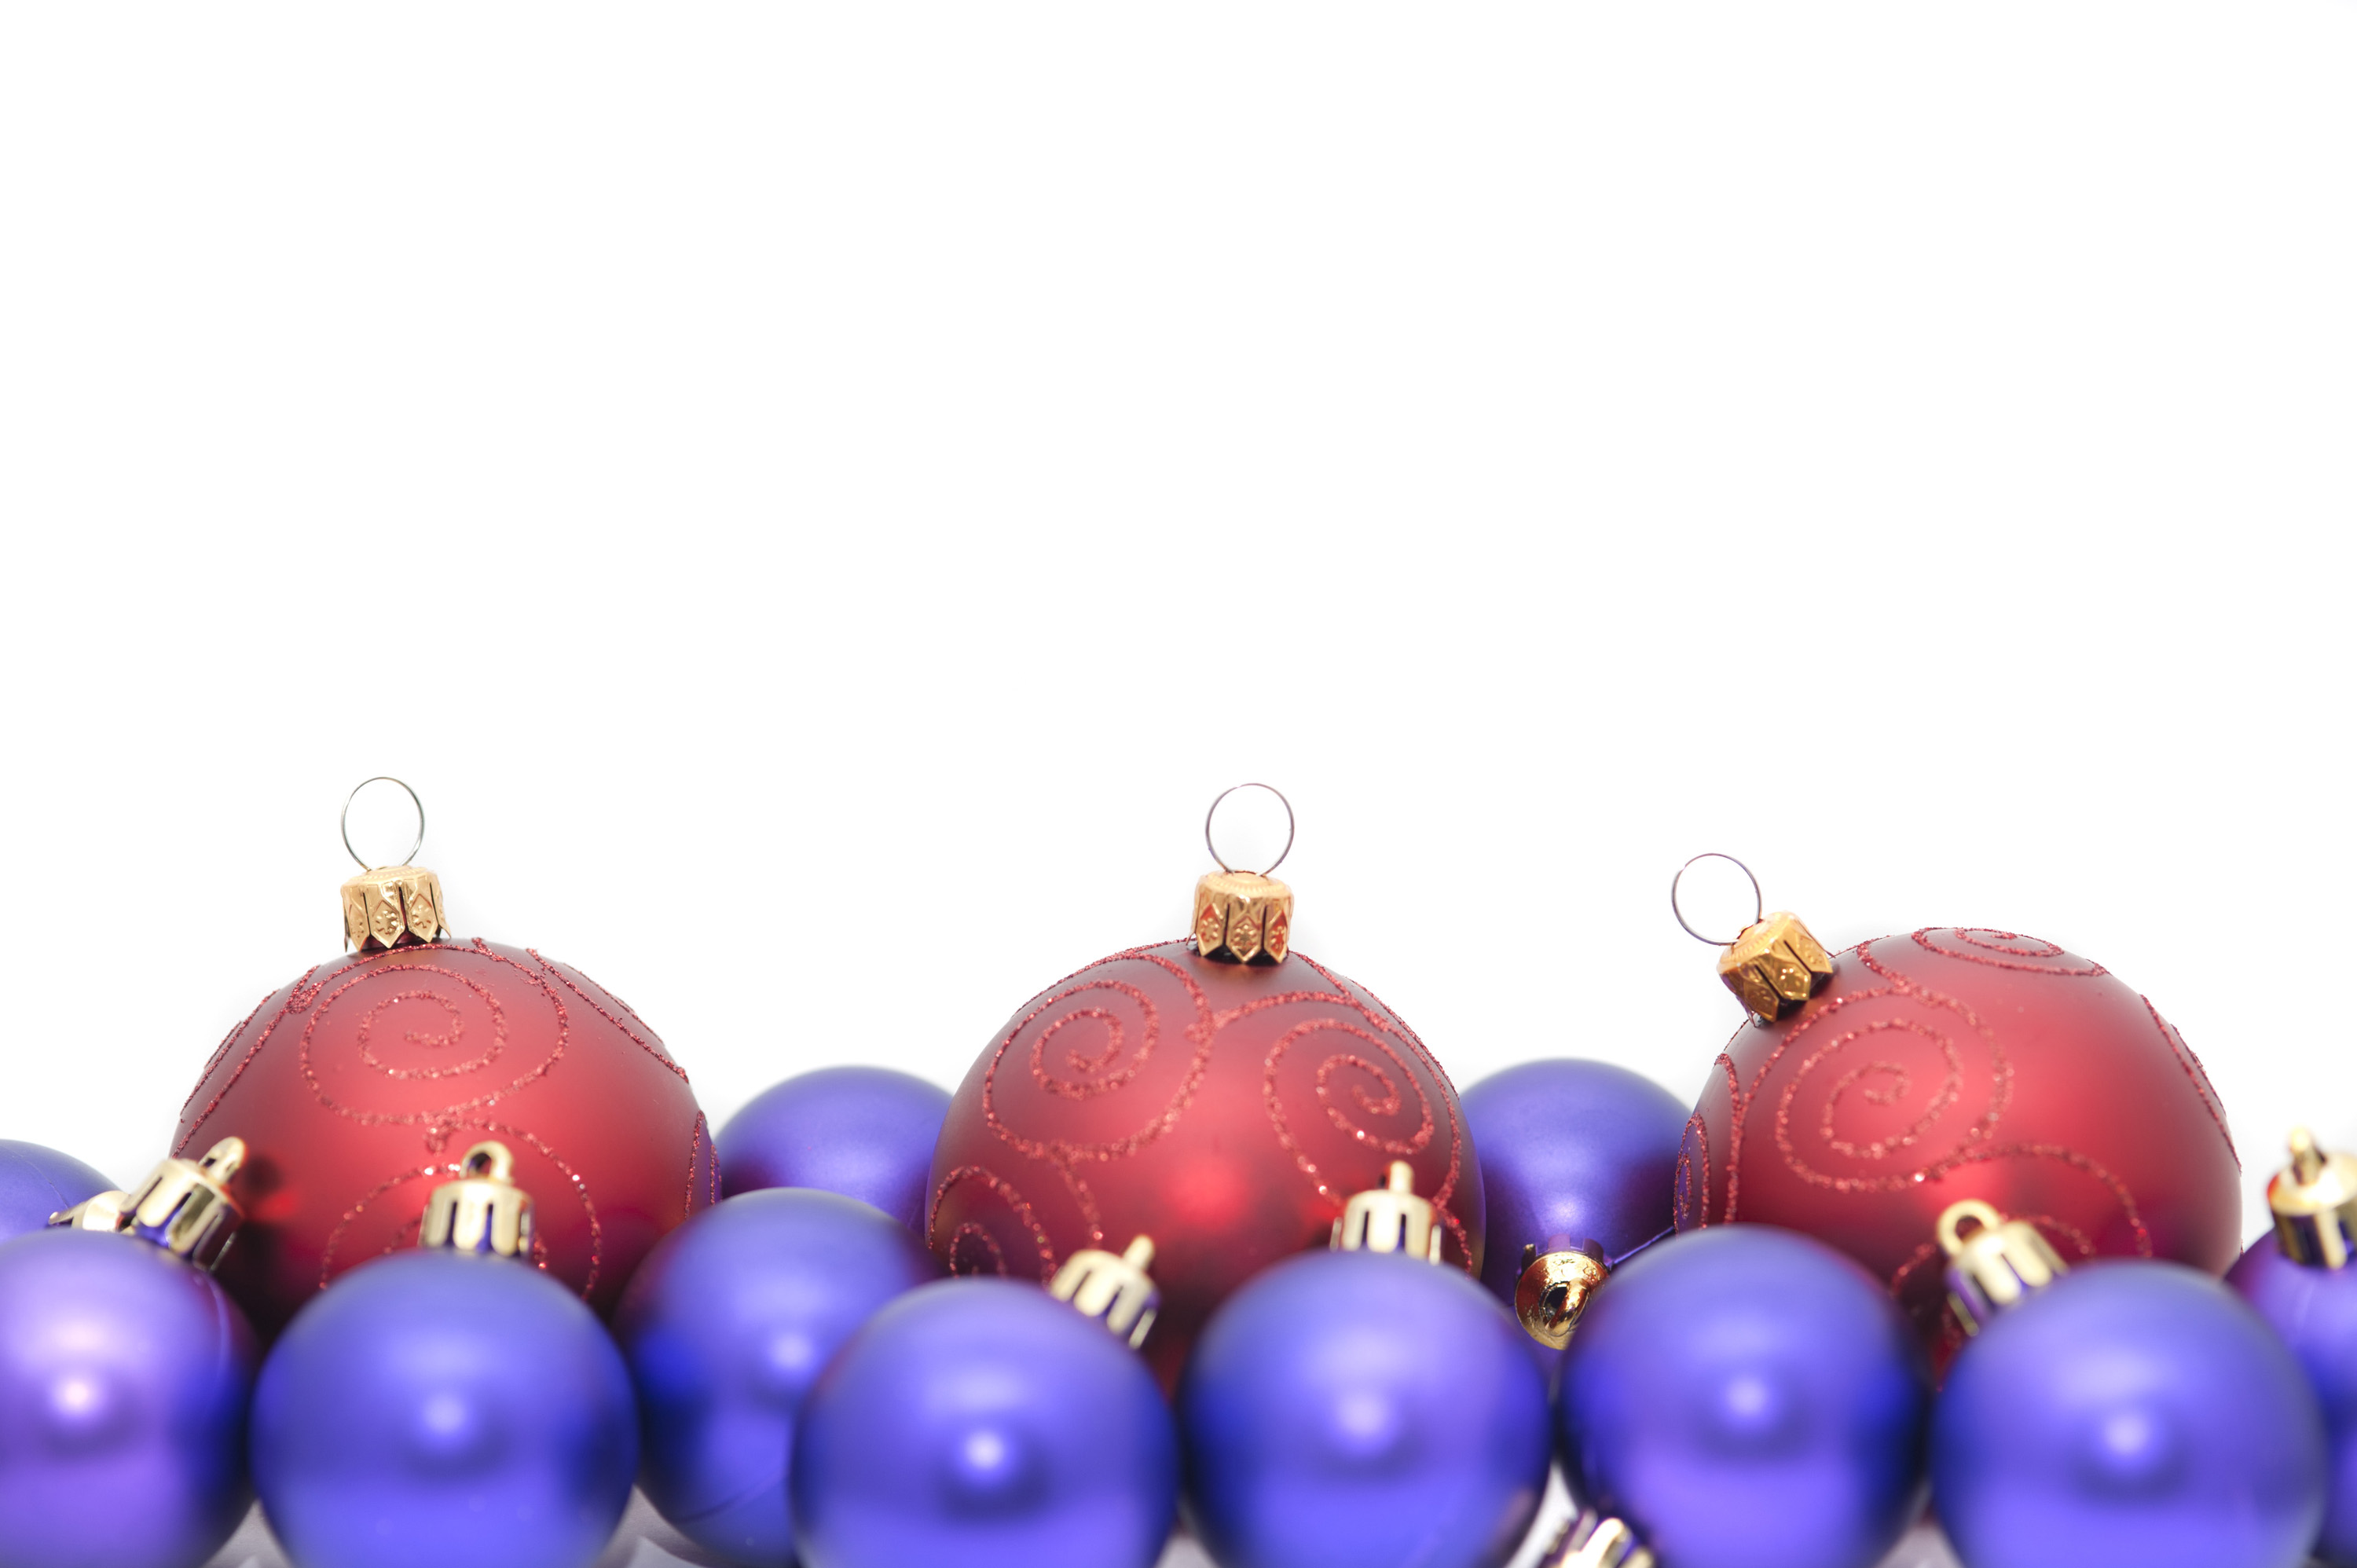 Colourful Christmas Bauble Border With Red And Purple Balls Arranged Along The Lower Edge Of